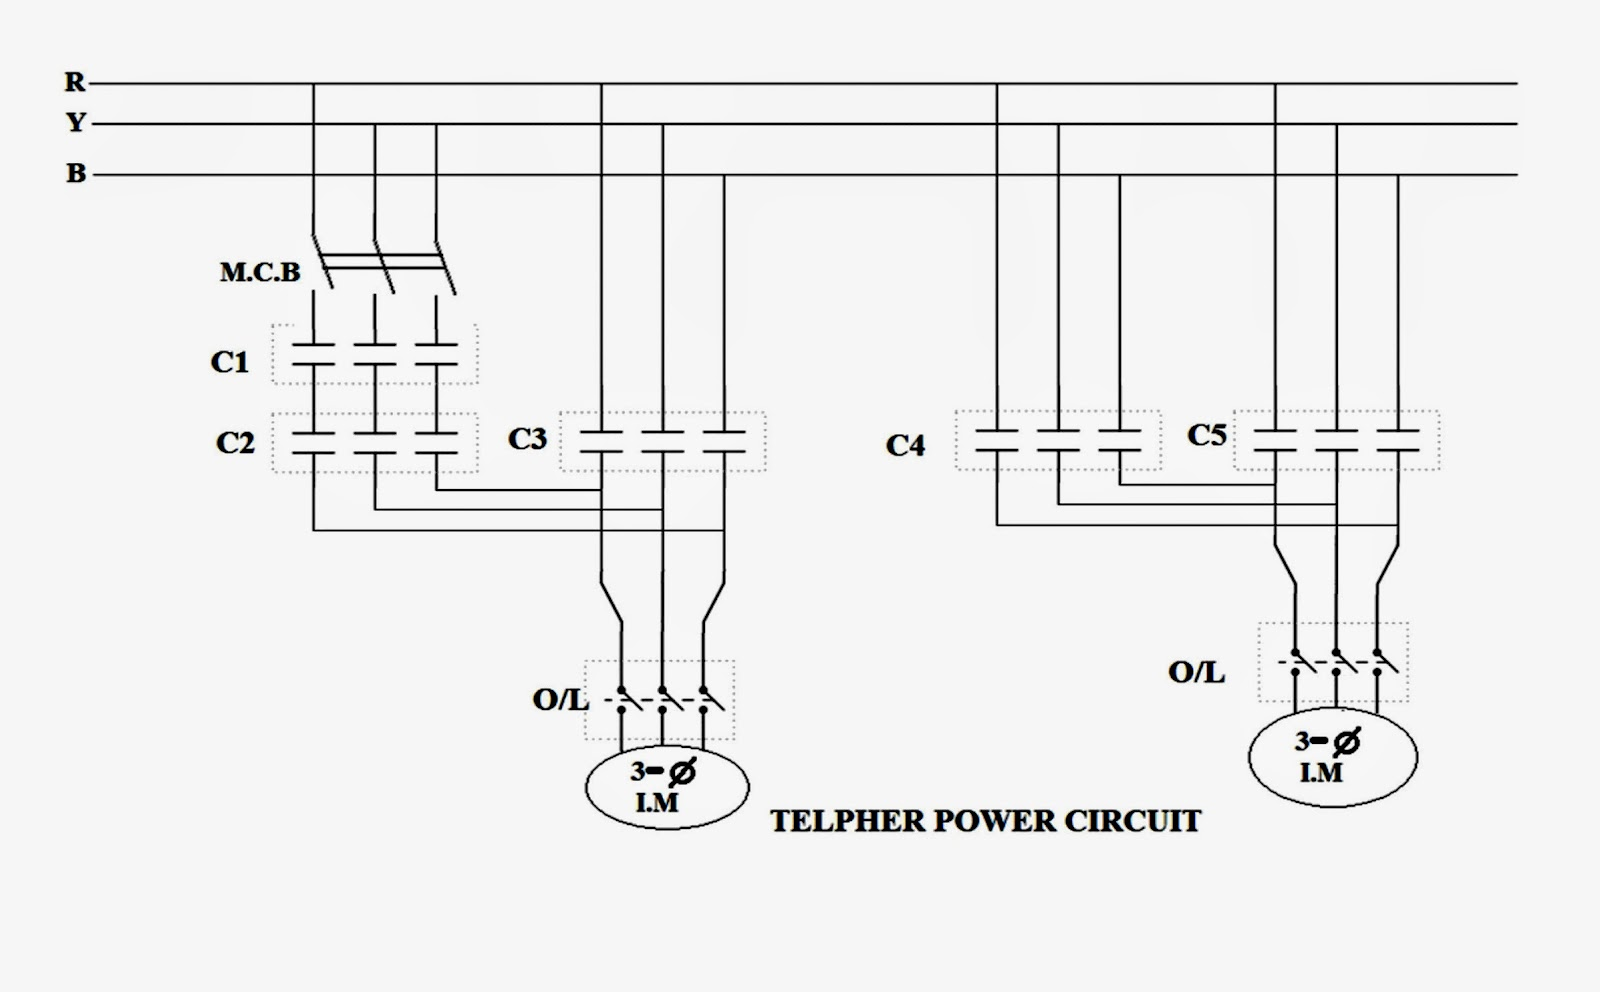 howell electric motor wiring diagram howell electric